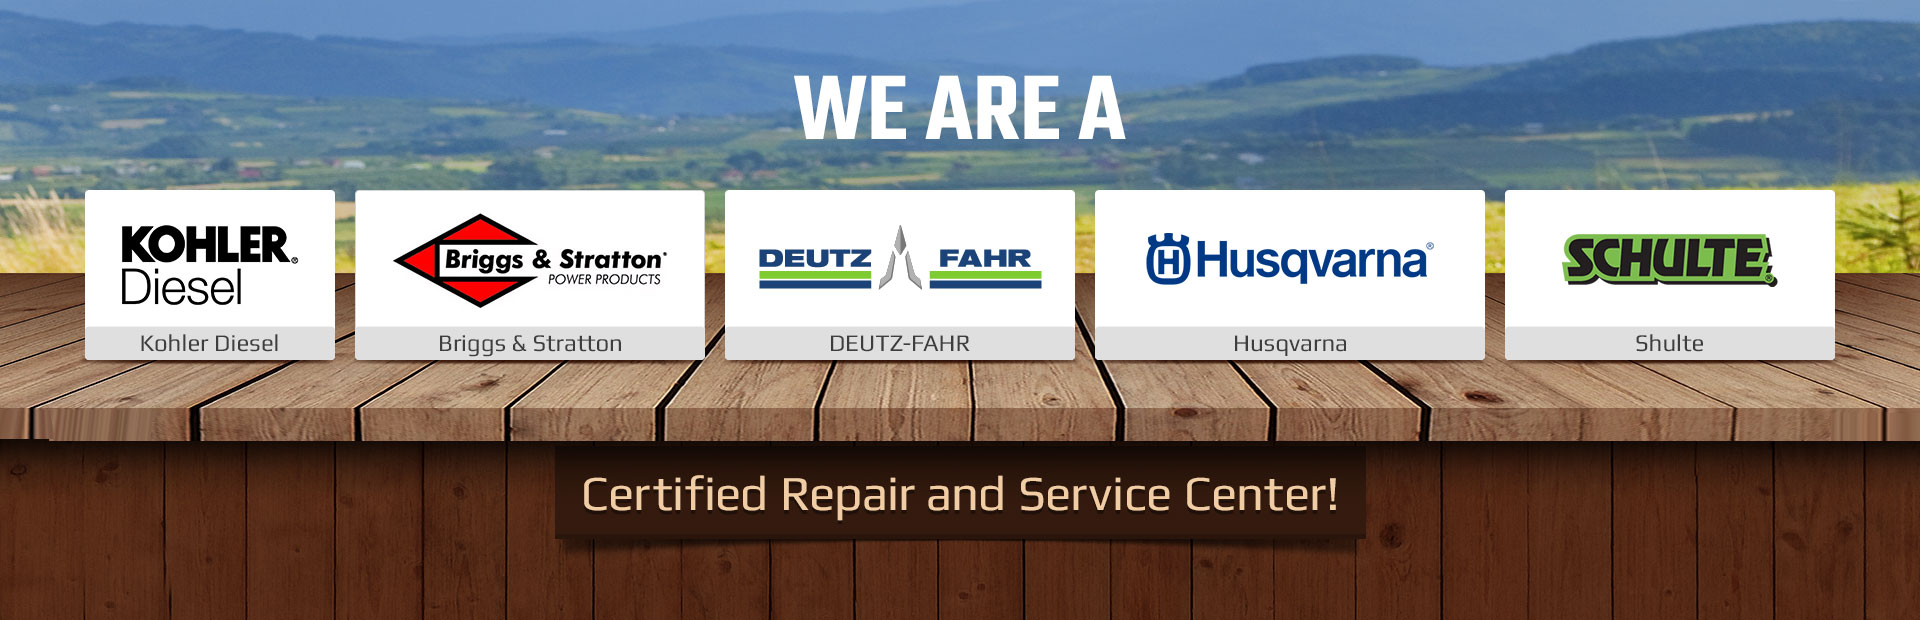 We are a Kohler Diesel, Briggs & Stratton, DEUTZ-FAHR, Husqvarna, and Shulte certified repair and service center! Contact us for details.